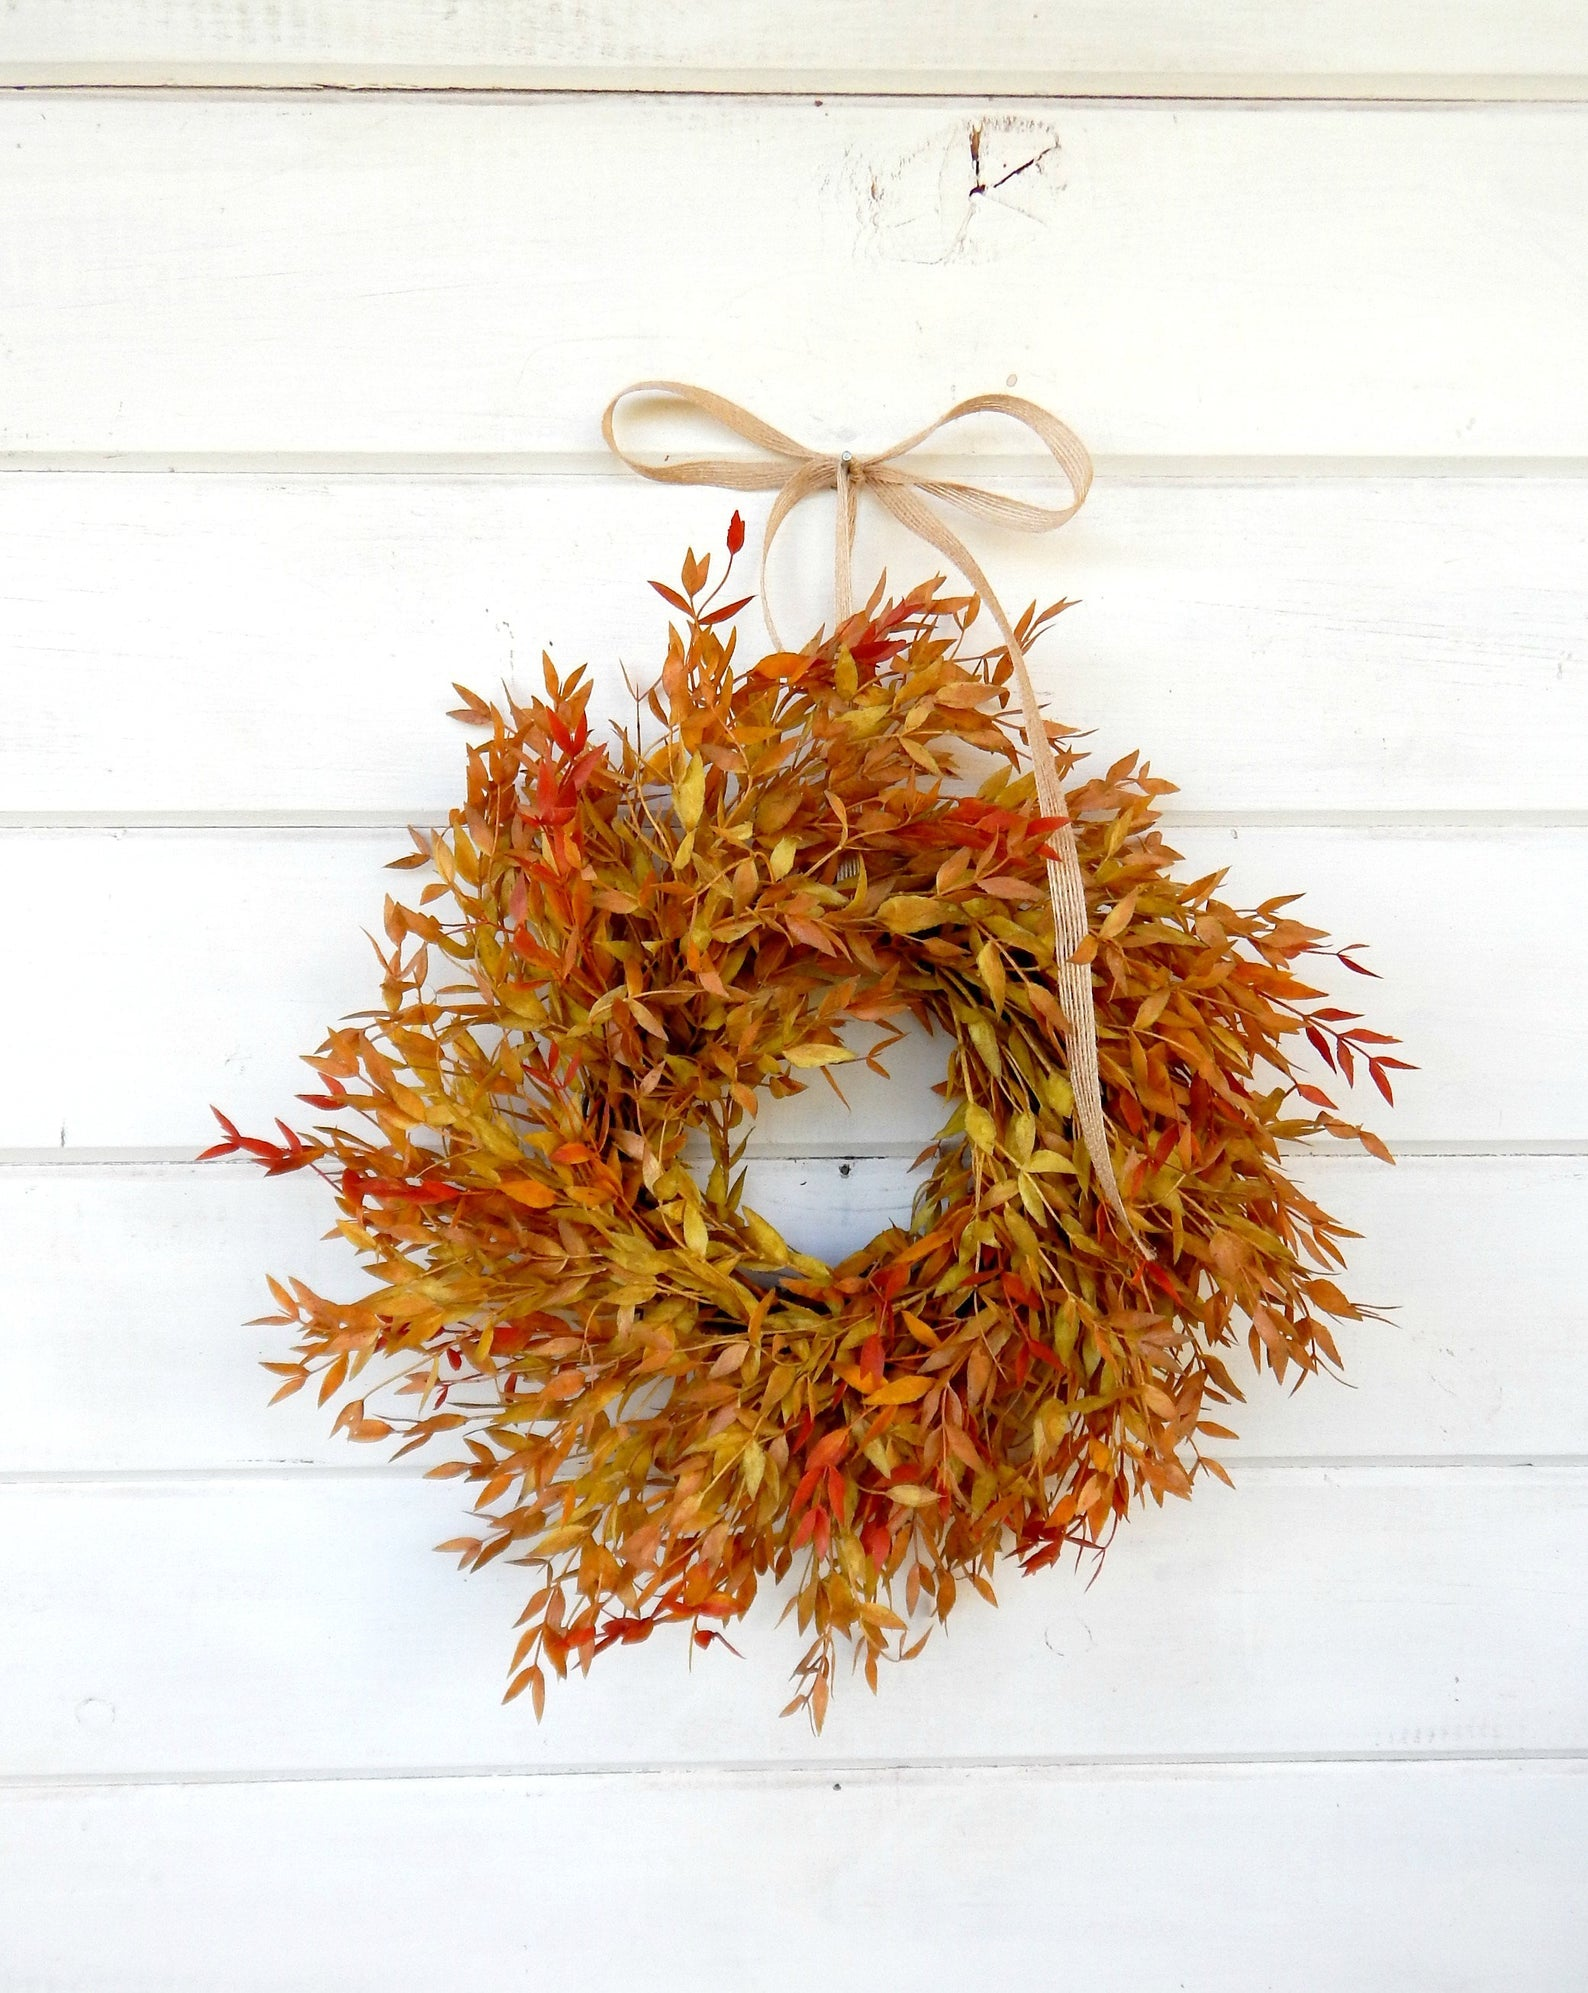 Fall Foliage Wreath - Autumn Wreath - Orange Red and Yellow Wreath